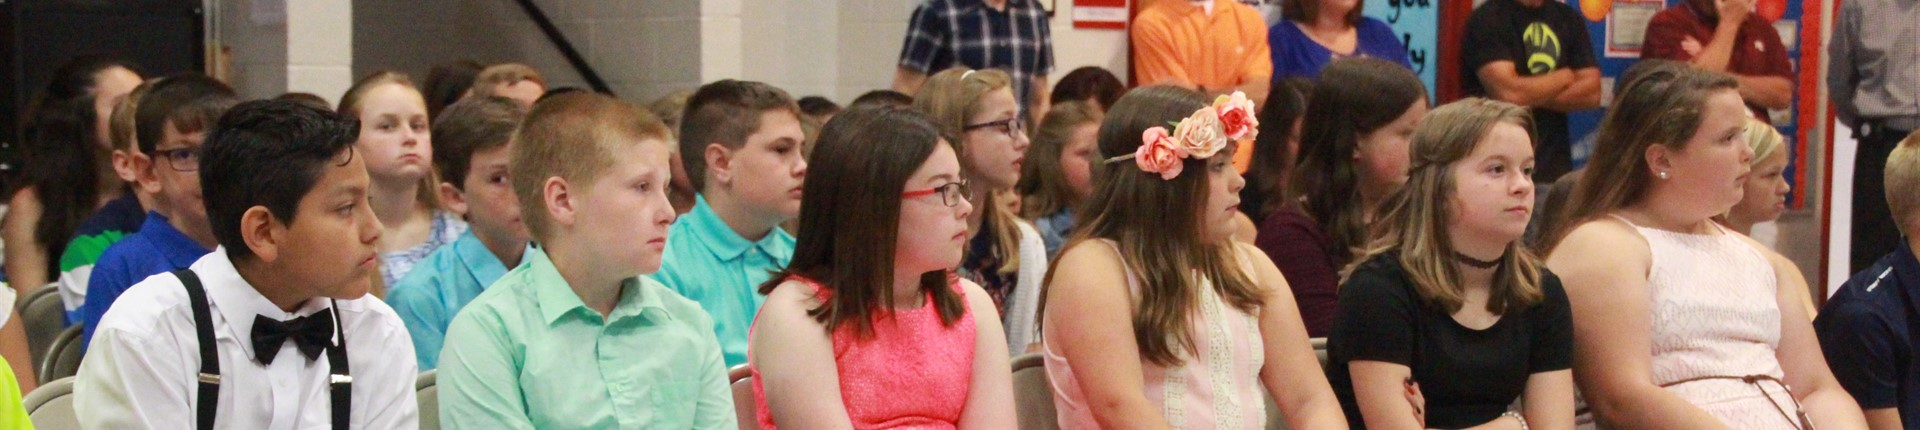 5th Graders Wait for Promotion Certificate at Bourbon Central Elementary